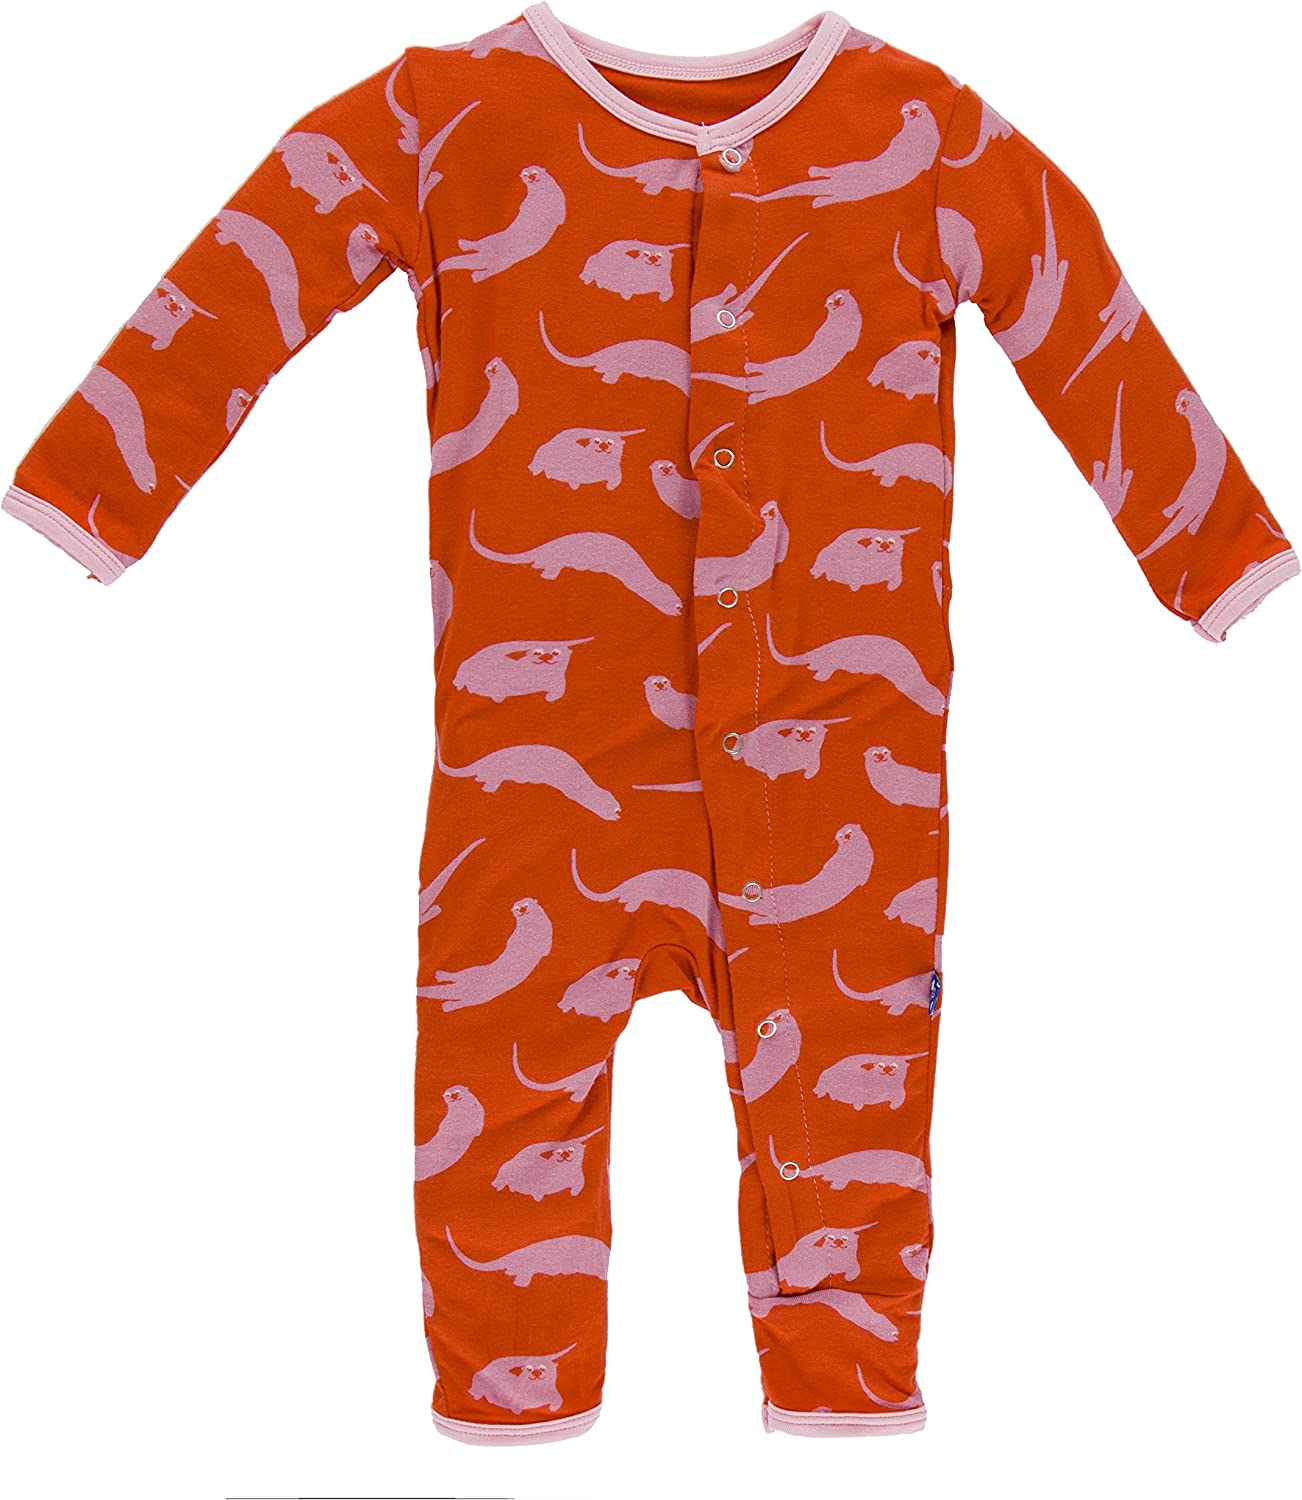 Kickee Pants Baby Girls Print Coverall Prd-kpca213-pot